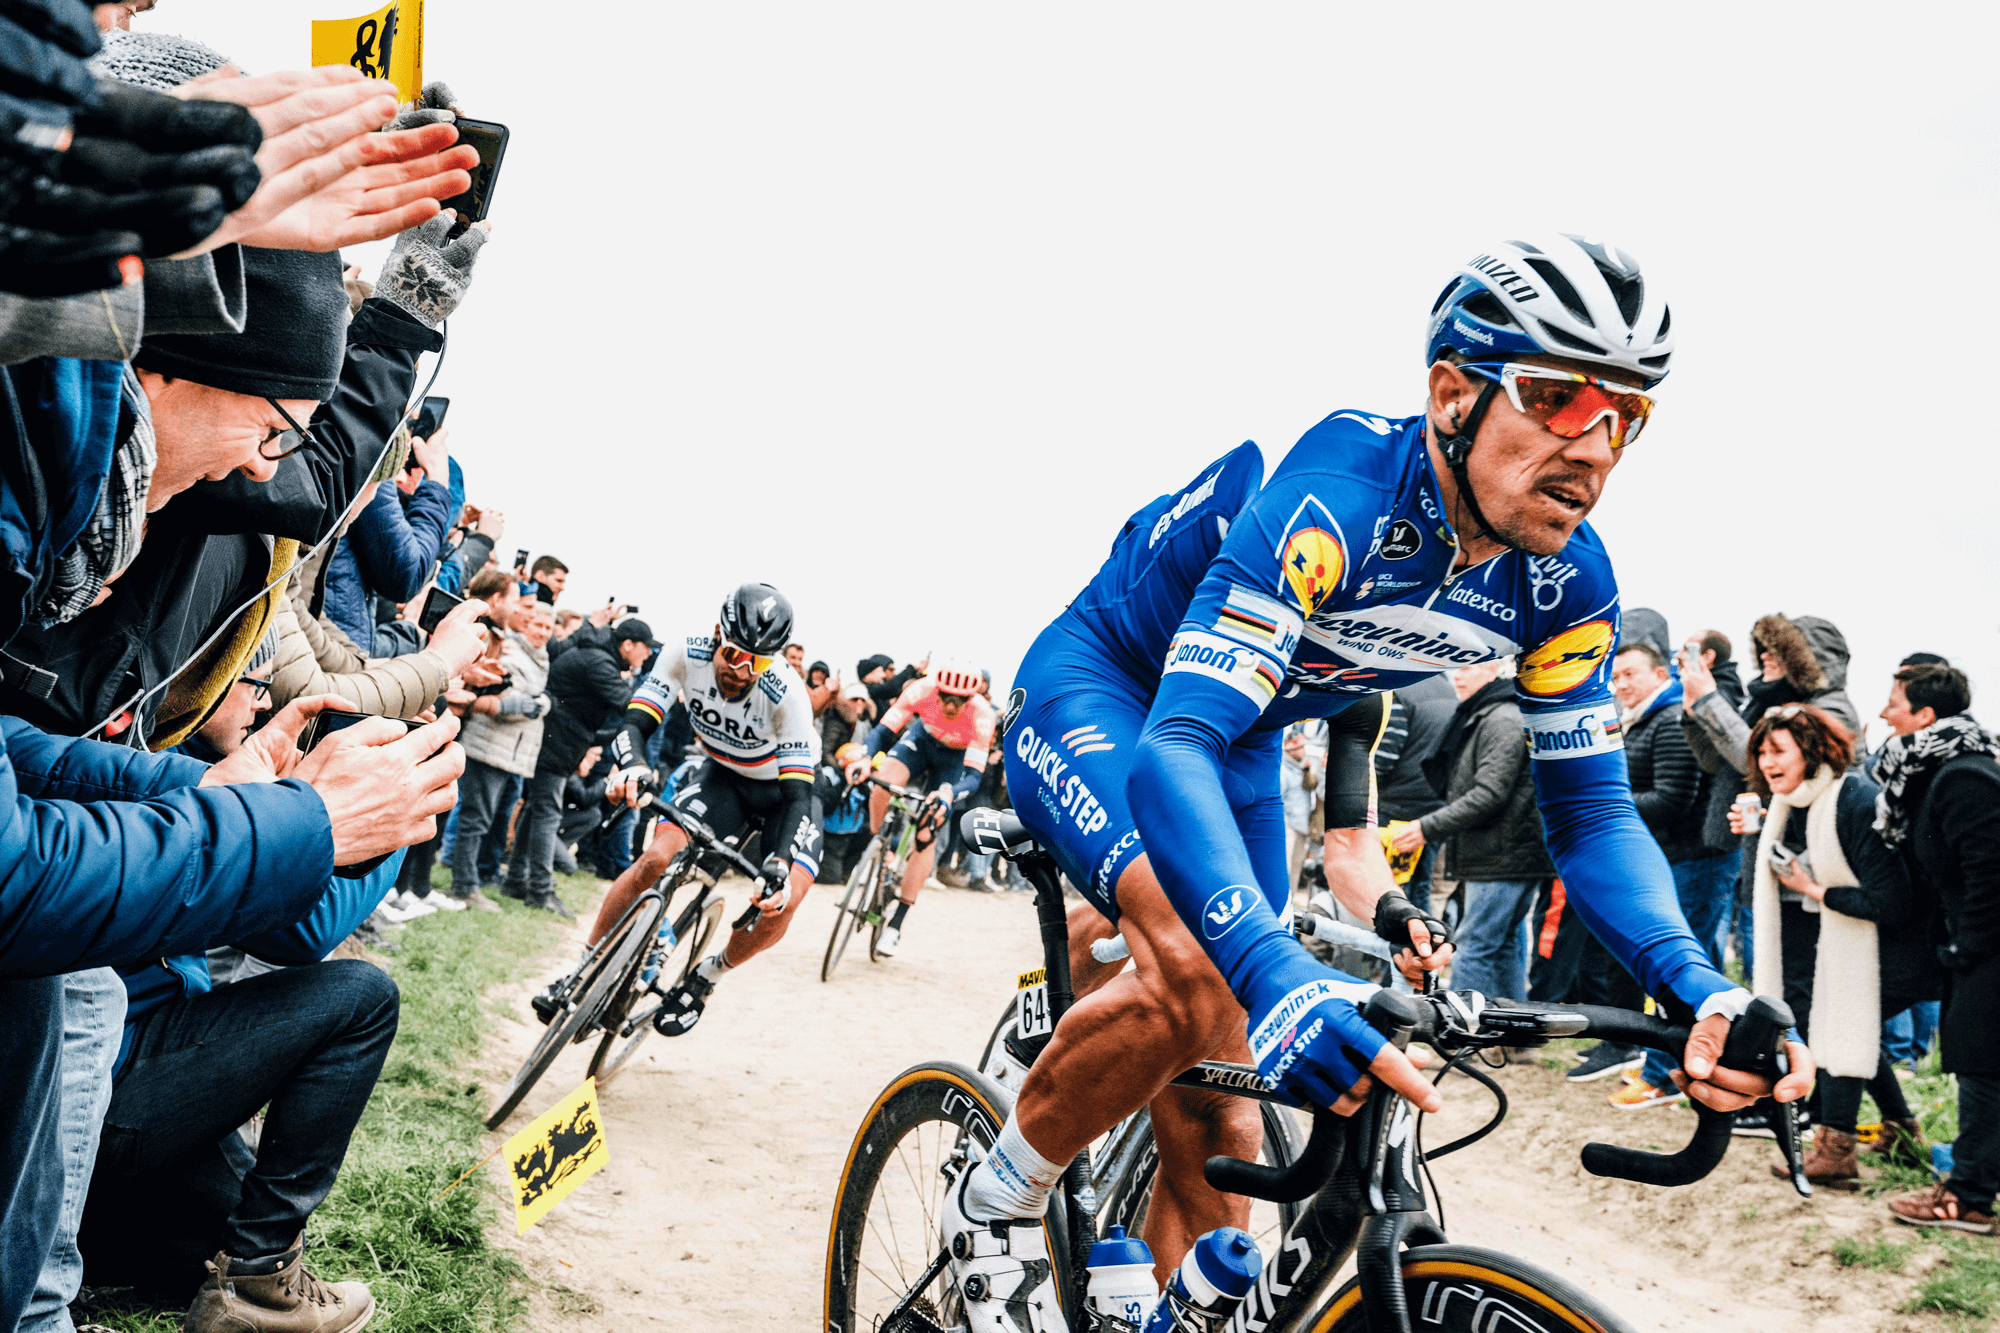 2019 Paris-Roubaix winner, Philippe Gilbert leading in front of 2018 winner Peter Sagan